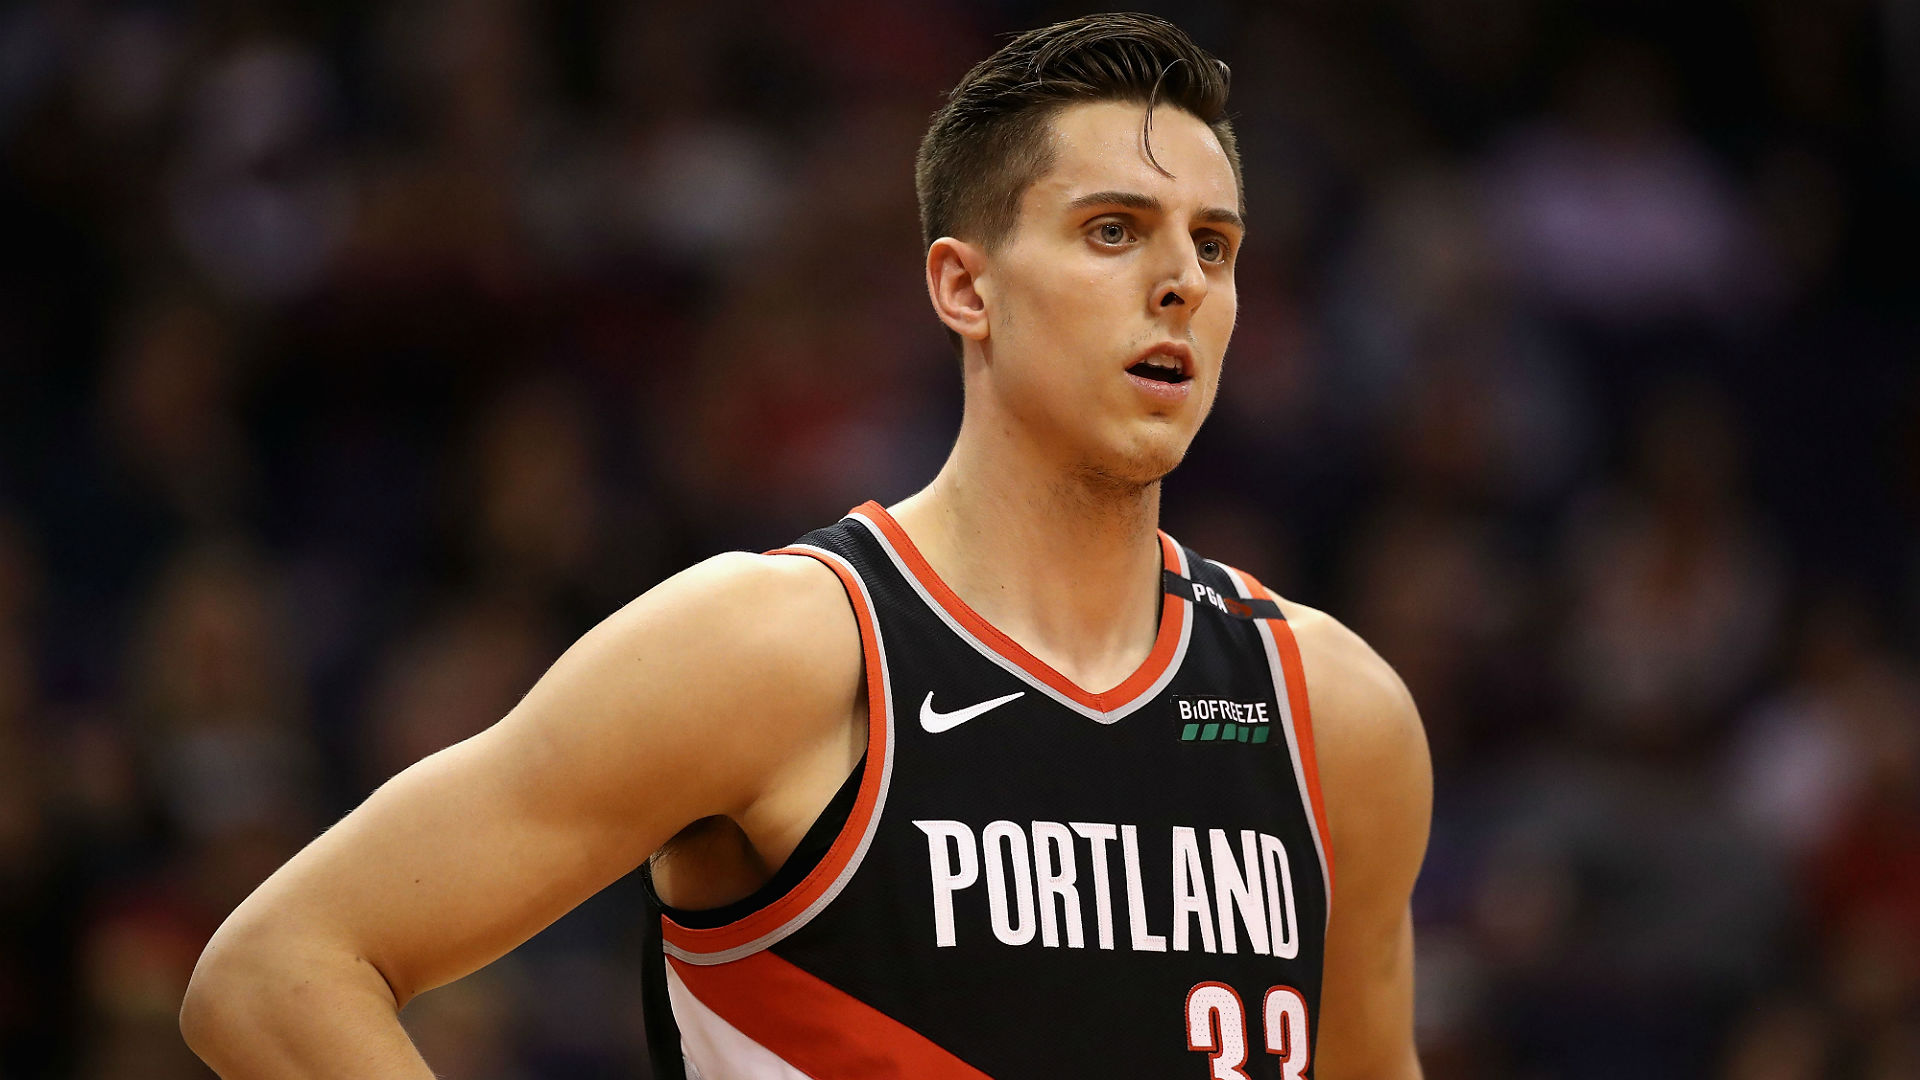 Who is Zach Collins, and why are the Warriors mad at him